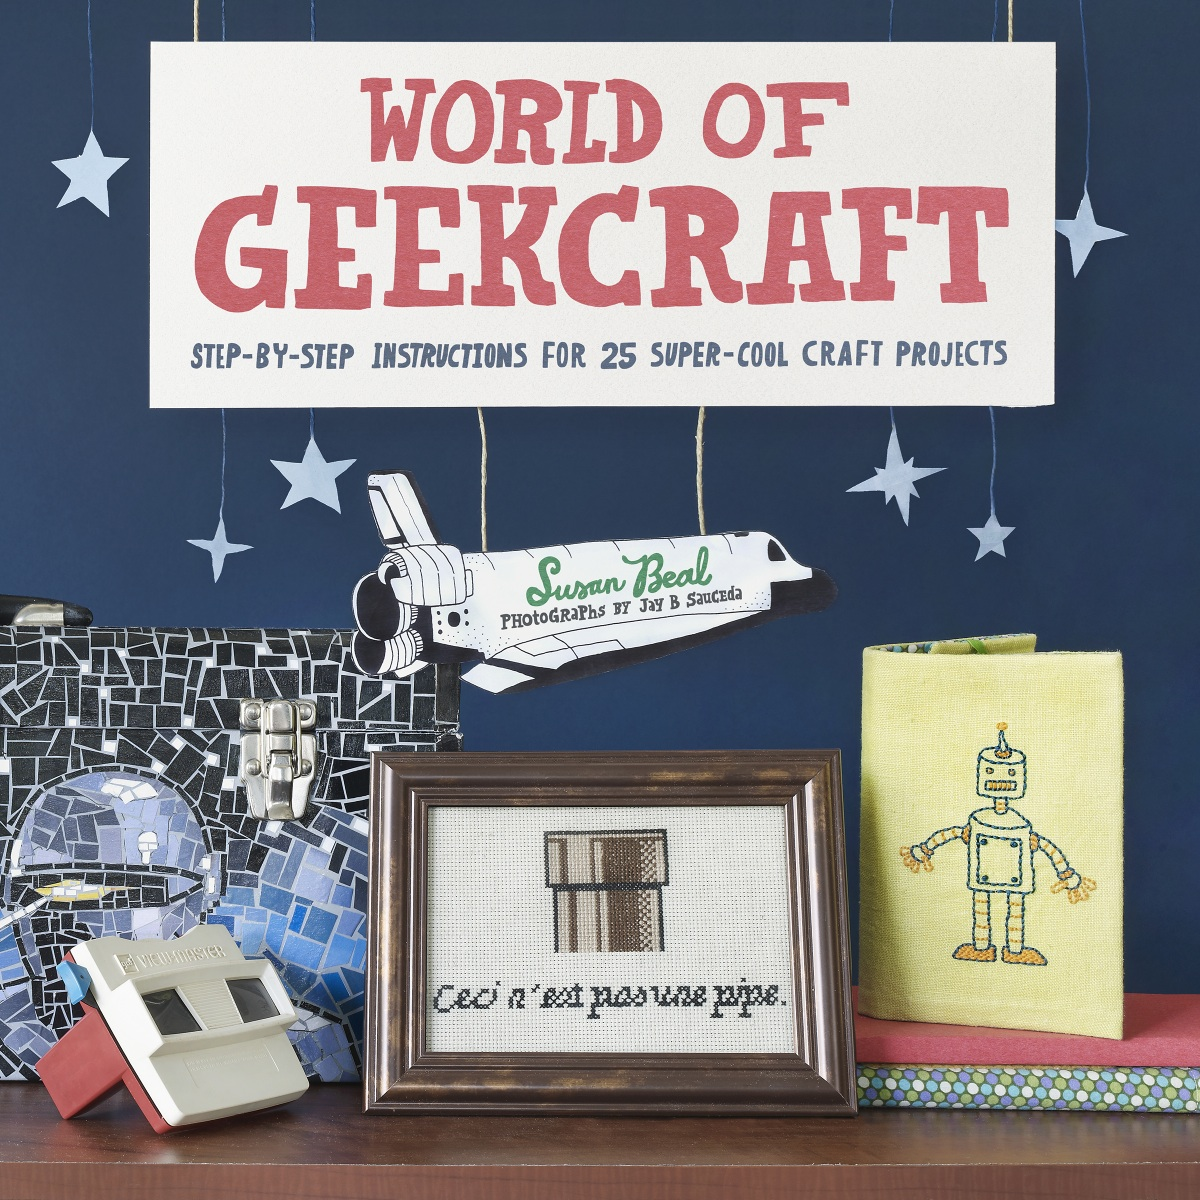 worldofgeekcraft-sm